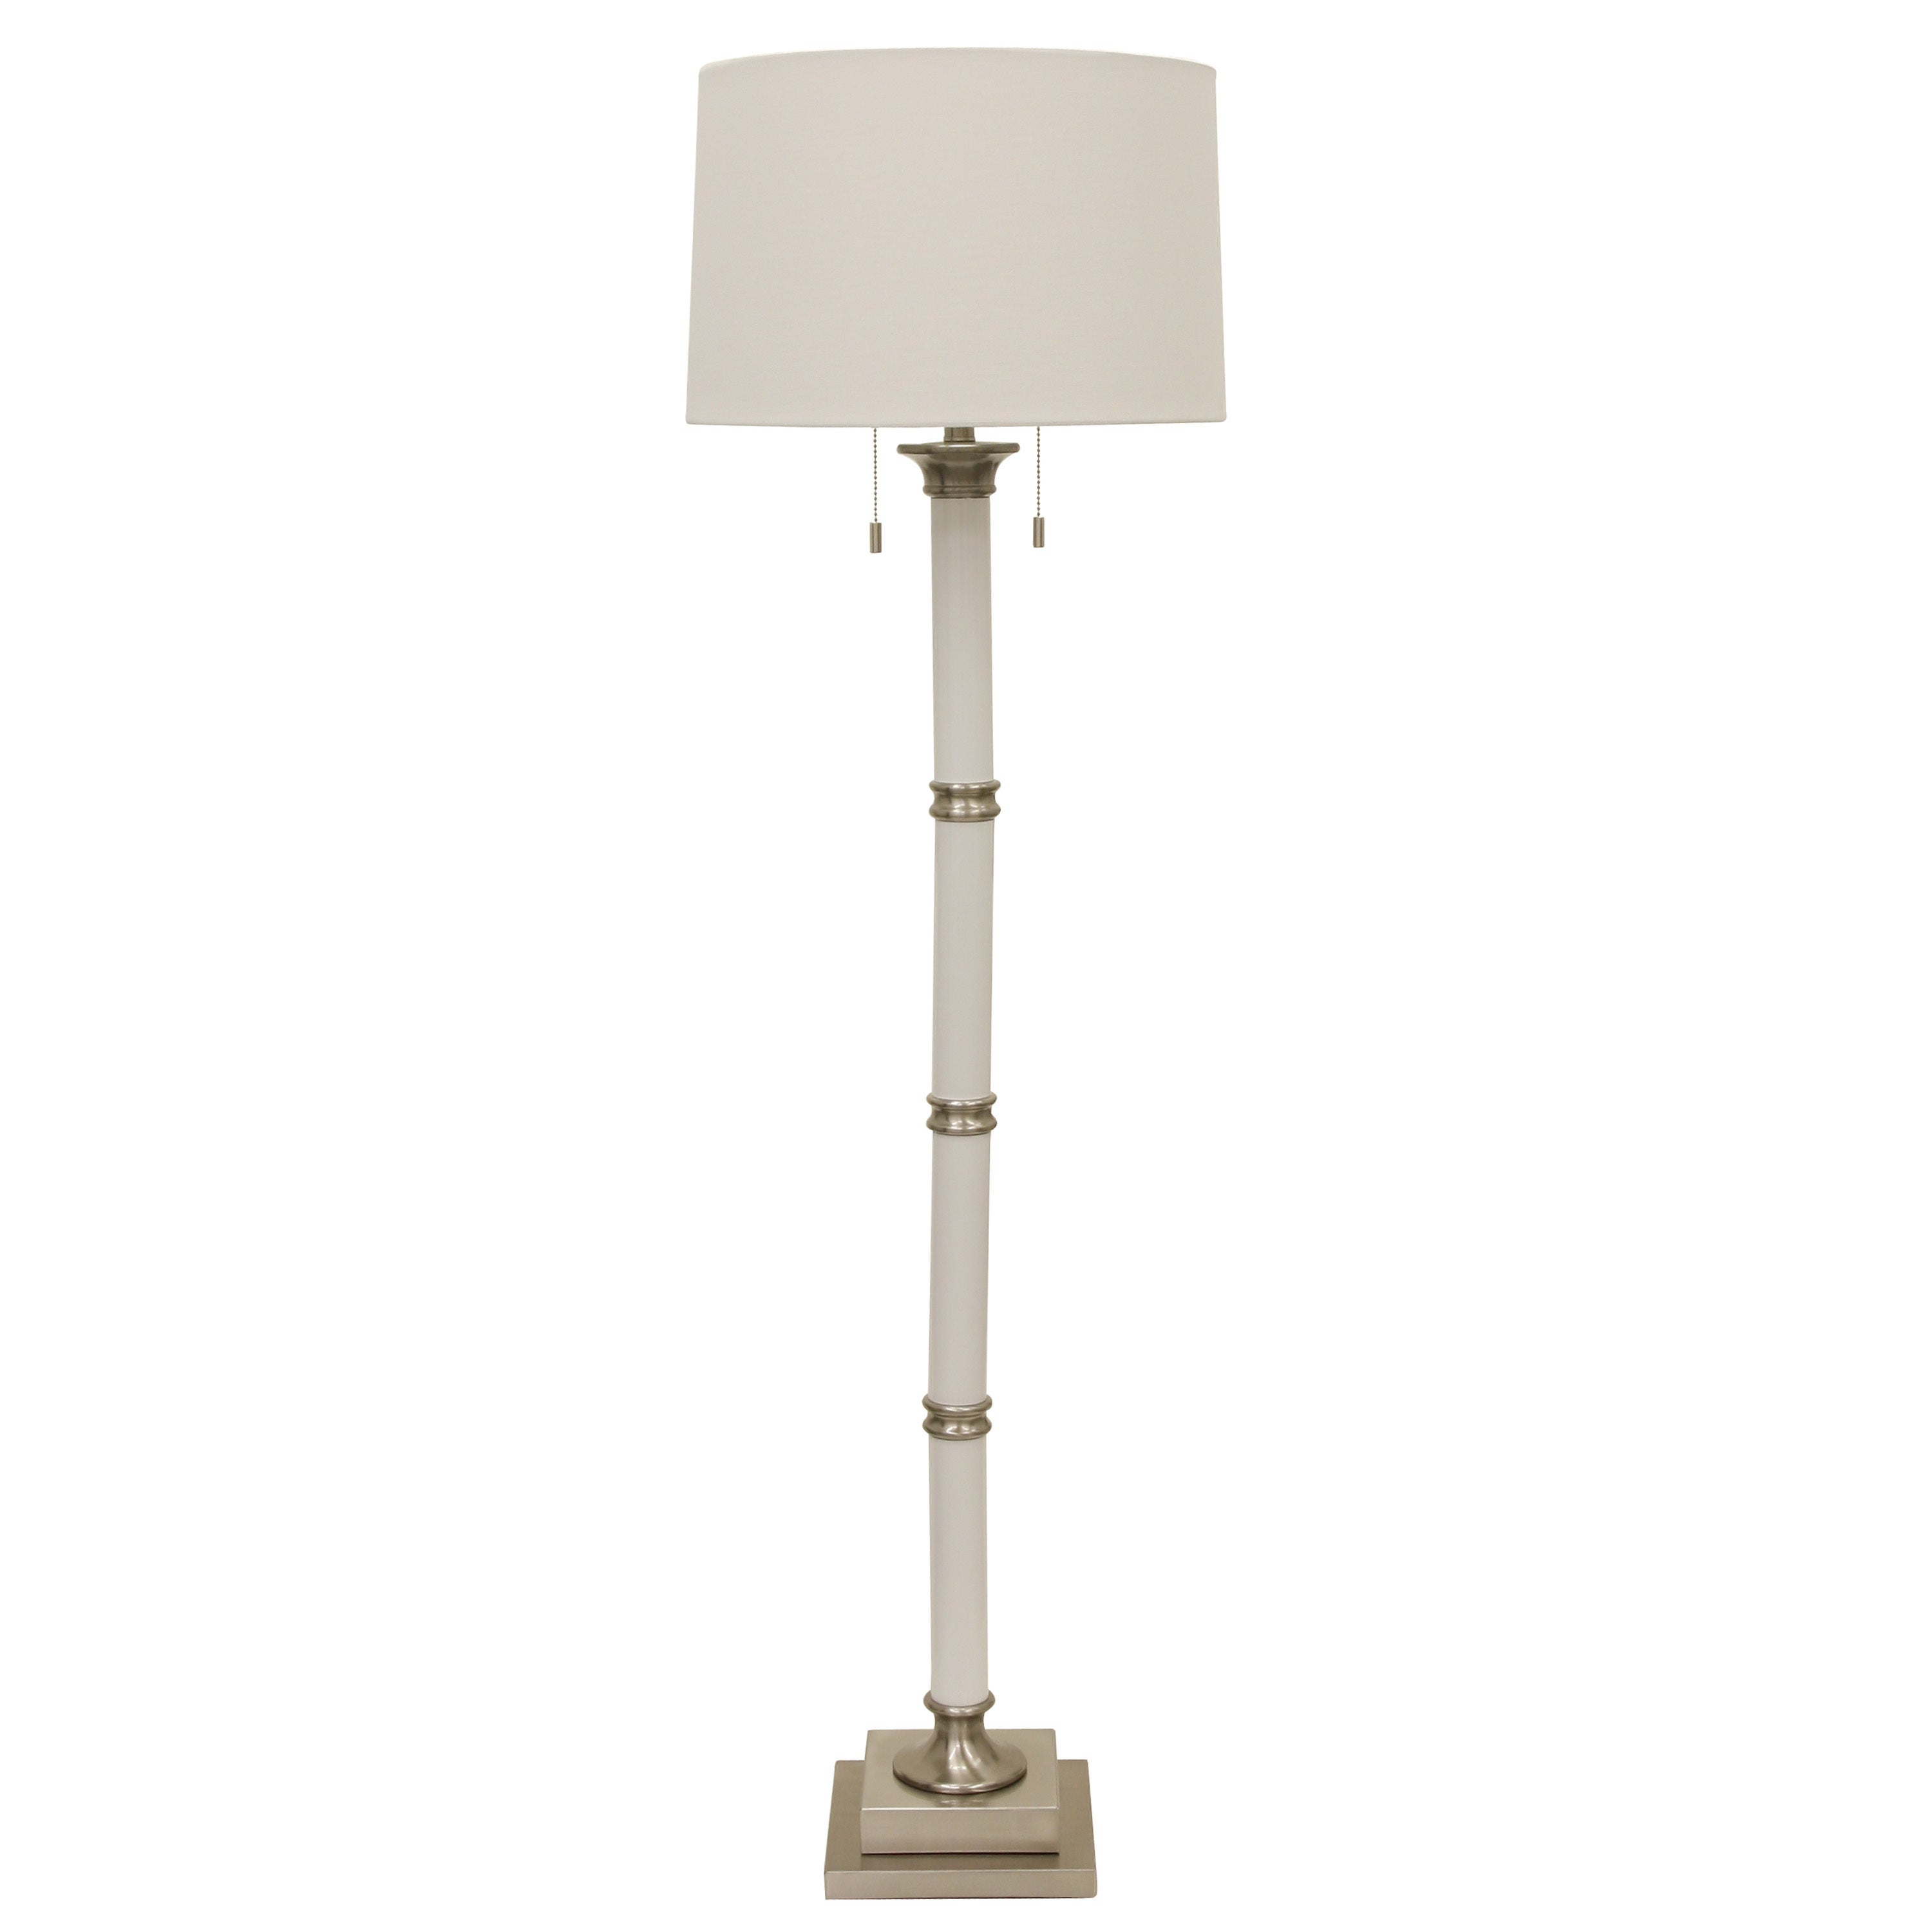 Decor Therapy White and Metal Column Twin Pull Floor Lamp...